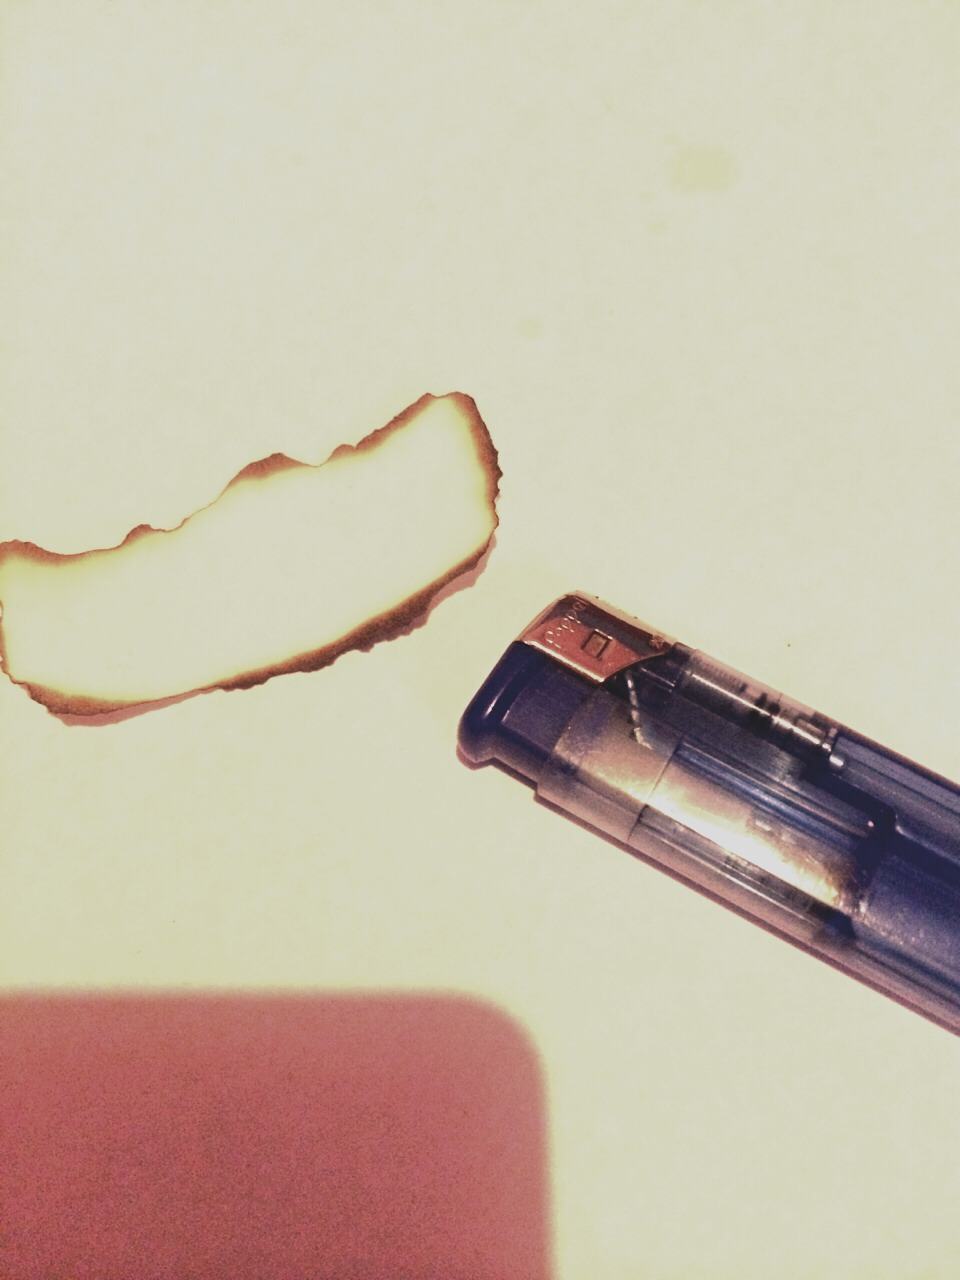 Use the lighter to carefully burn the edges of the paper to give it an antique effect 😃